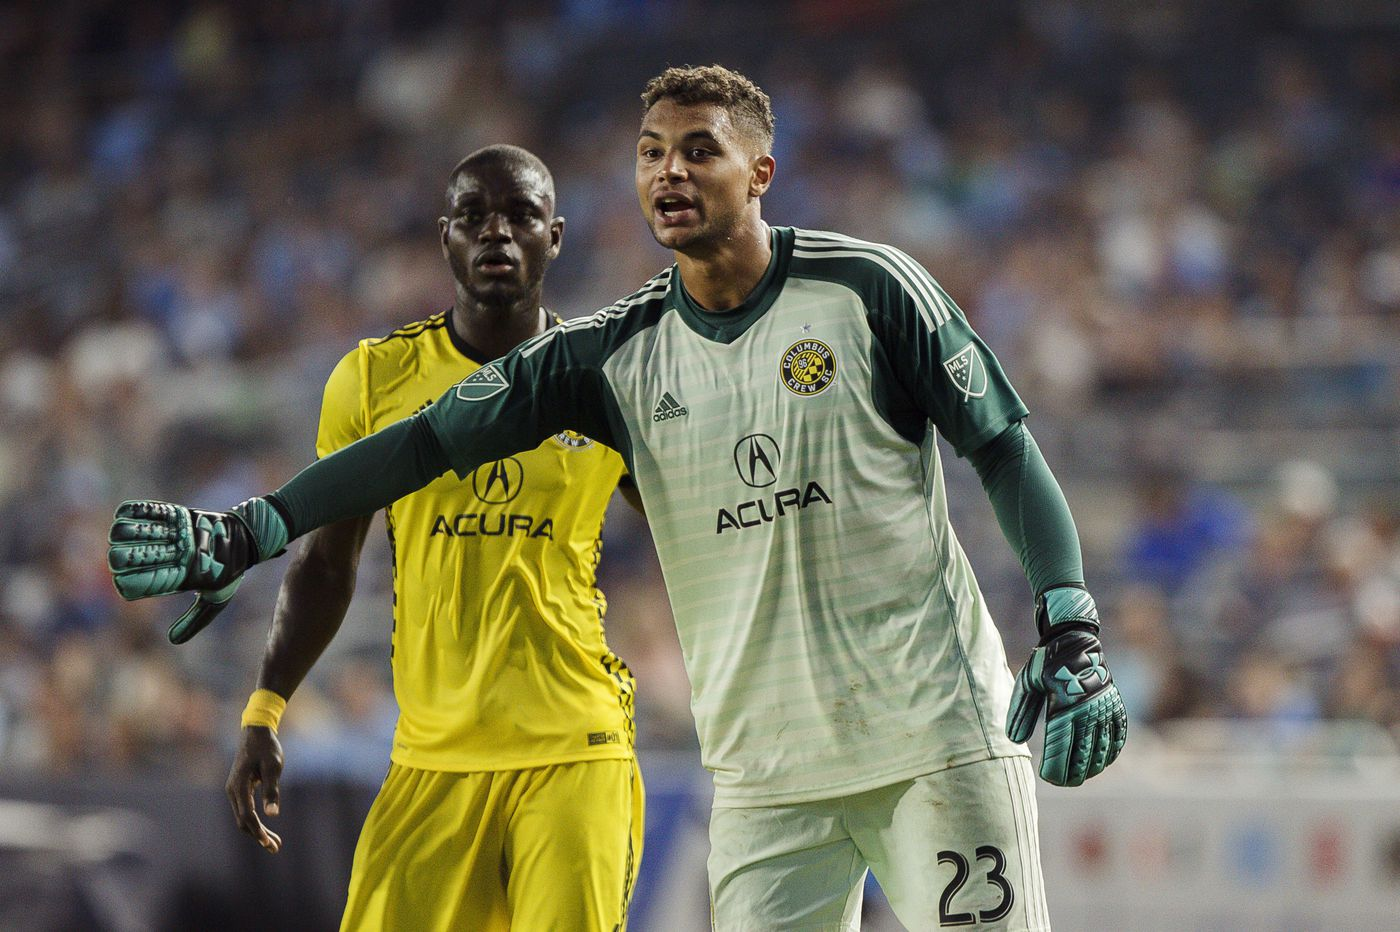 Zack Steffen in latest USMNT roster; he'll miss only game at Union before Man City move